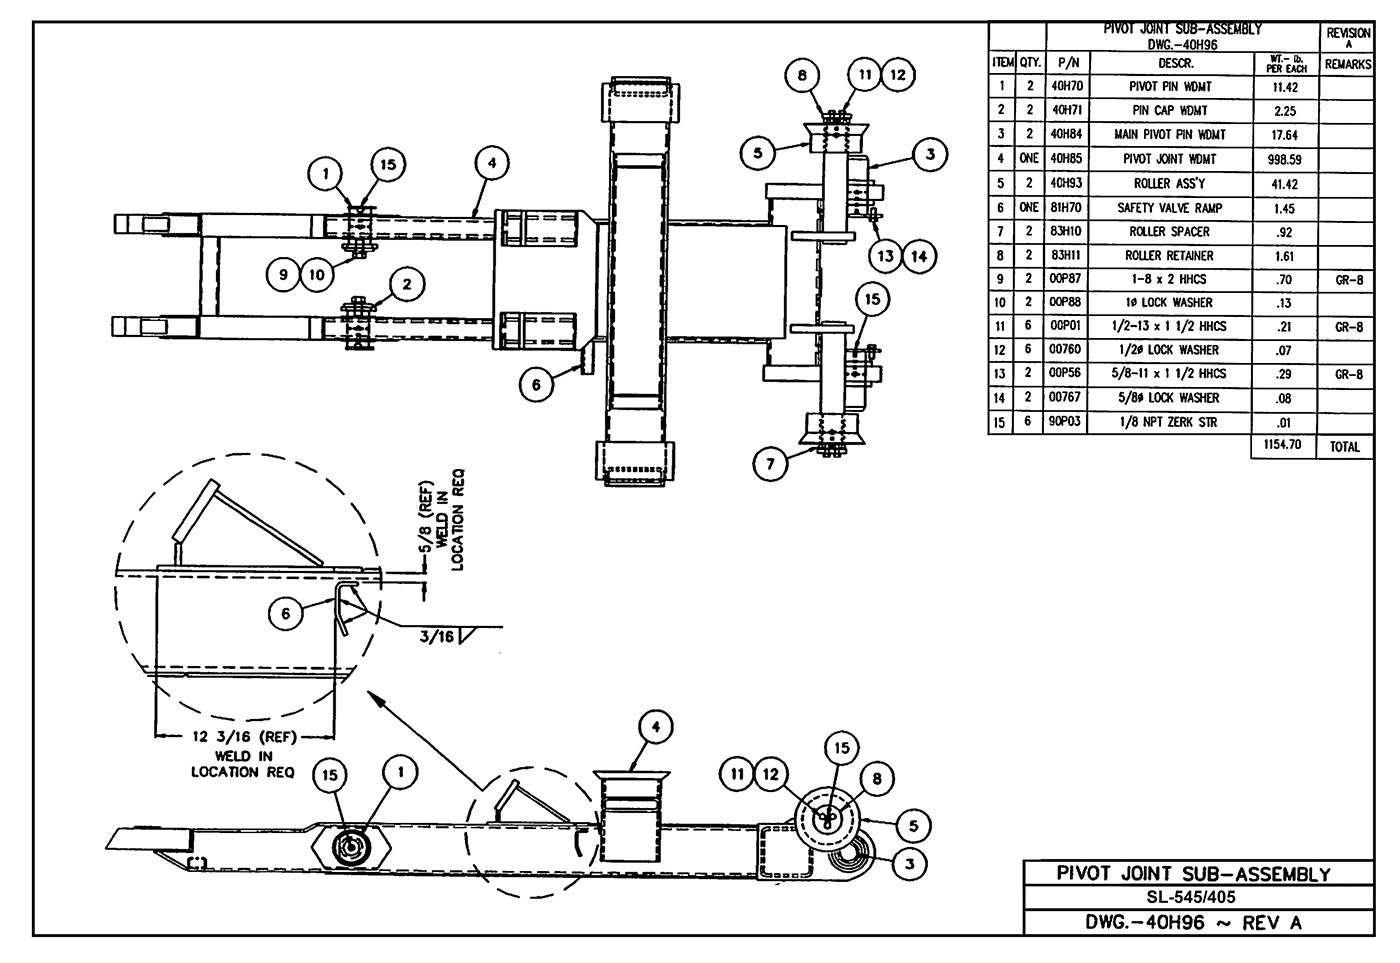 SL-545/405 Pivot Joint Sub-Assembly Diagram